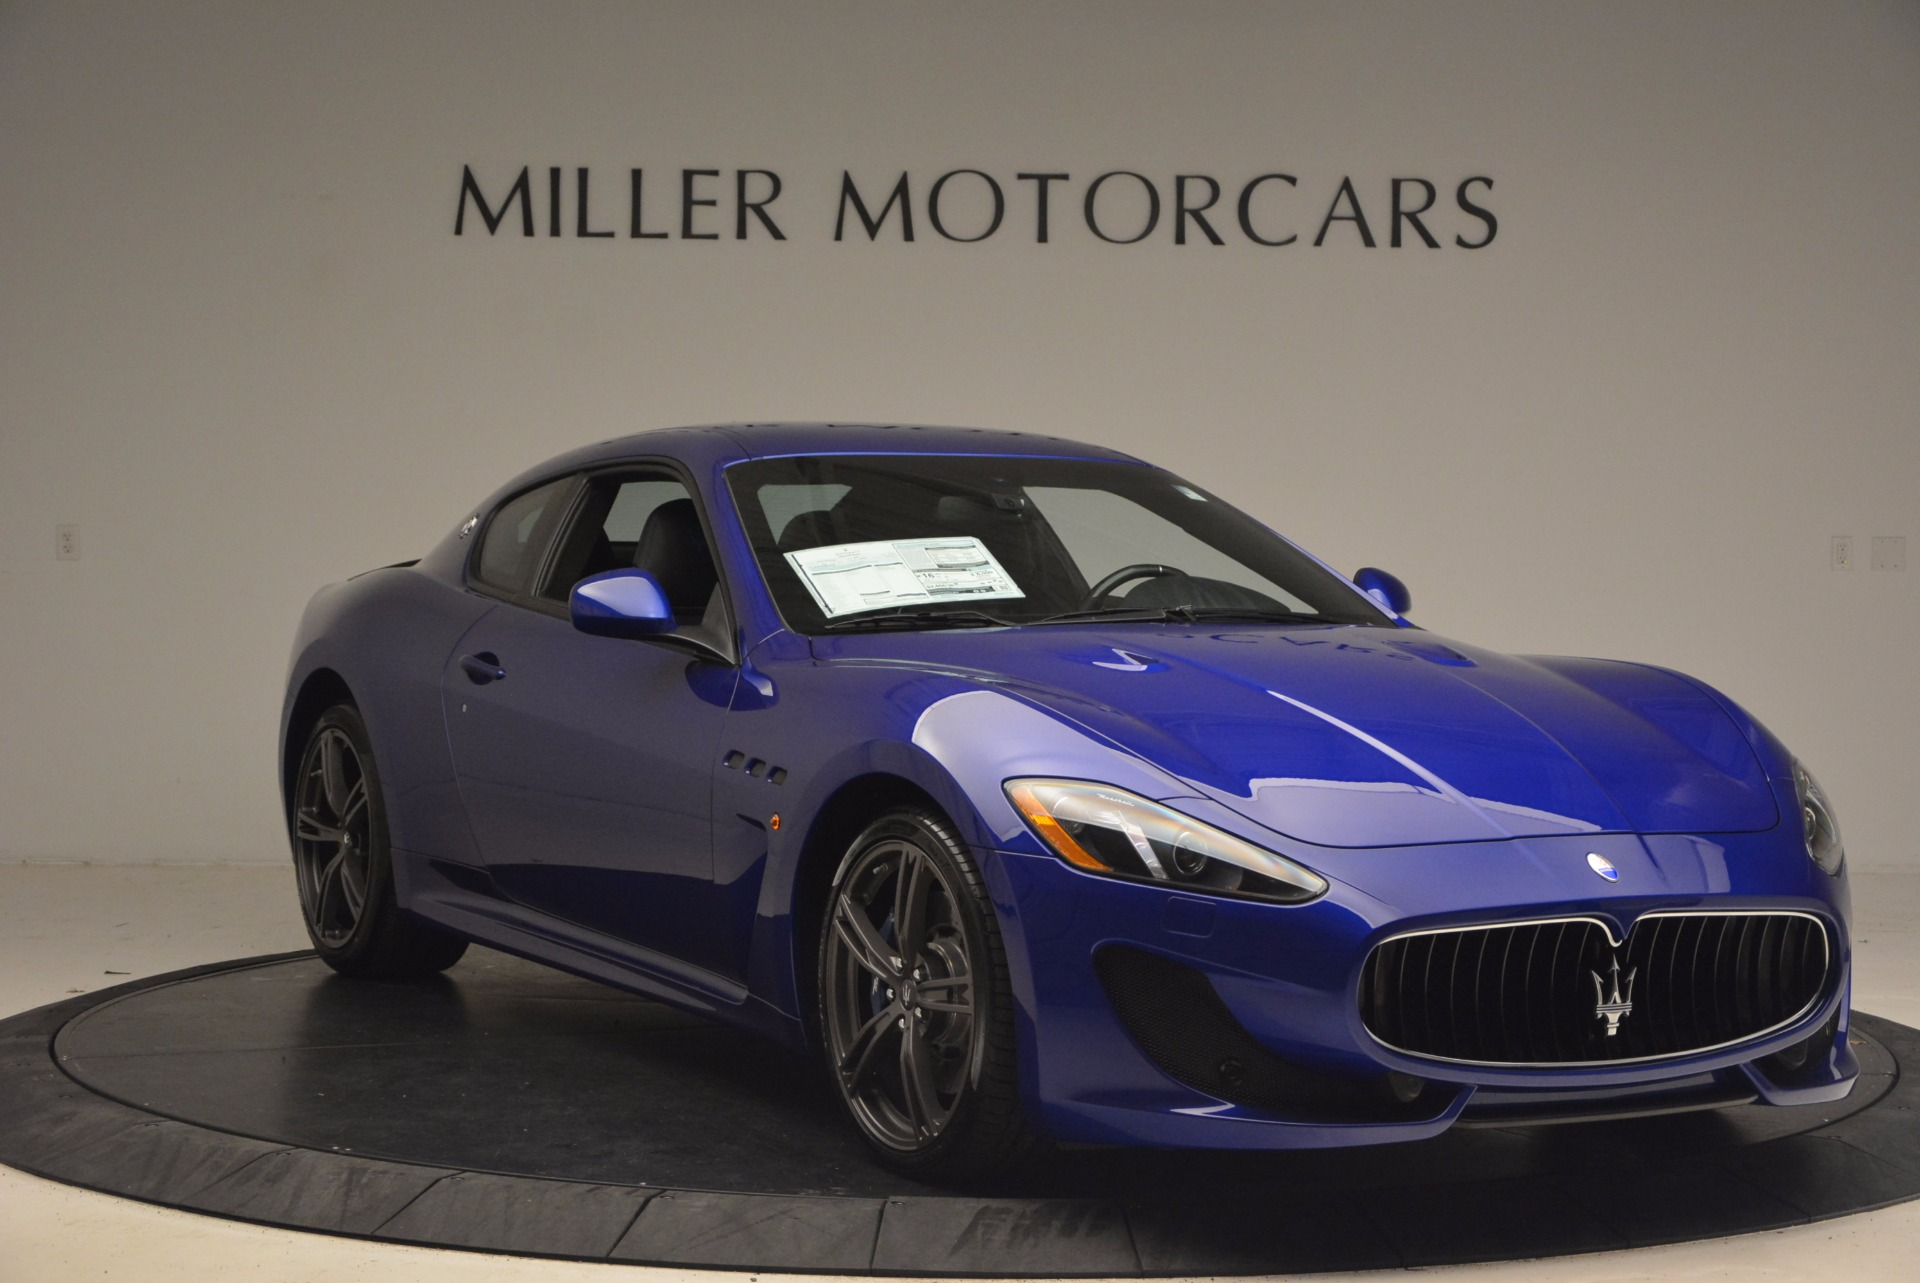 New 2017 Maserati GranTurismo Sport Coupe Special Edition For Sale In Westport, CT 1300_p11